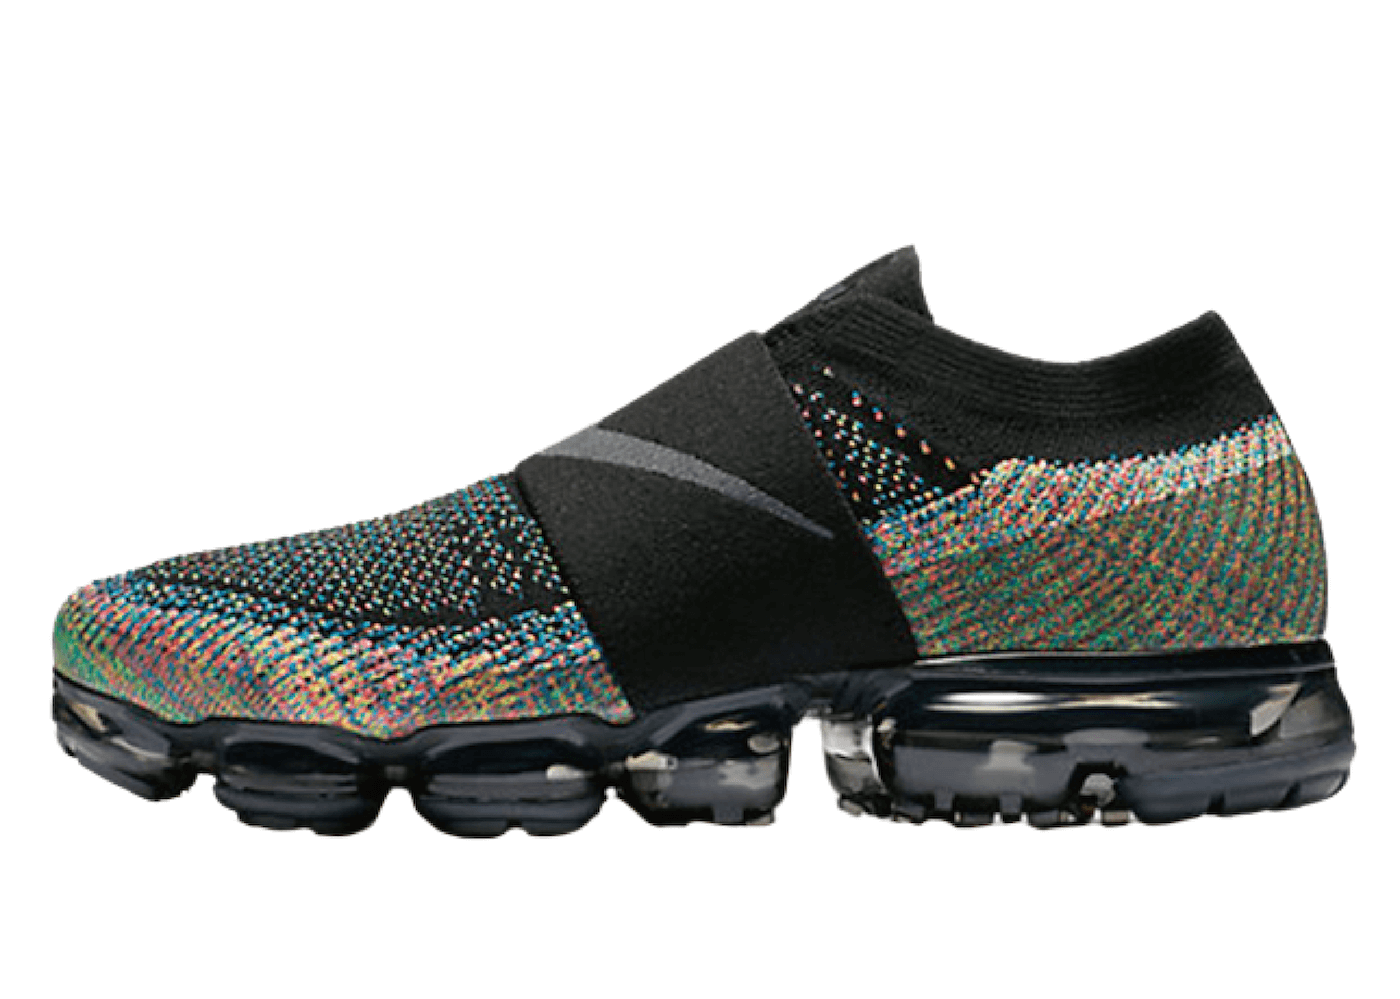 Air VaporMax Moc Multi-Colorの写真